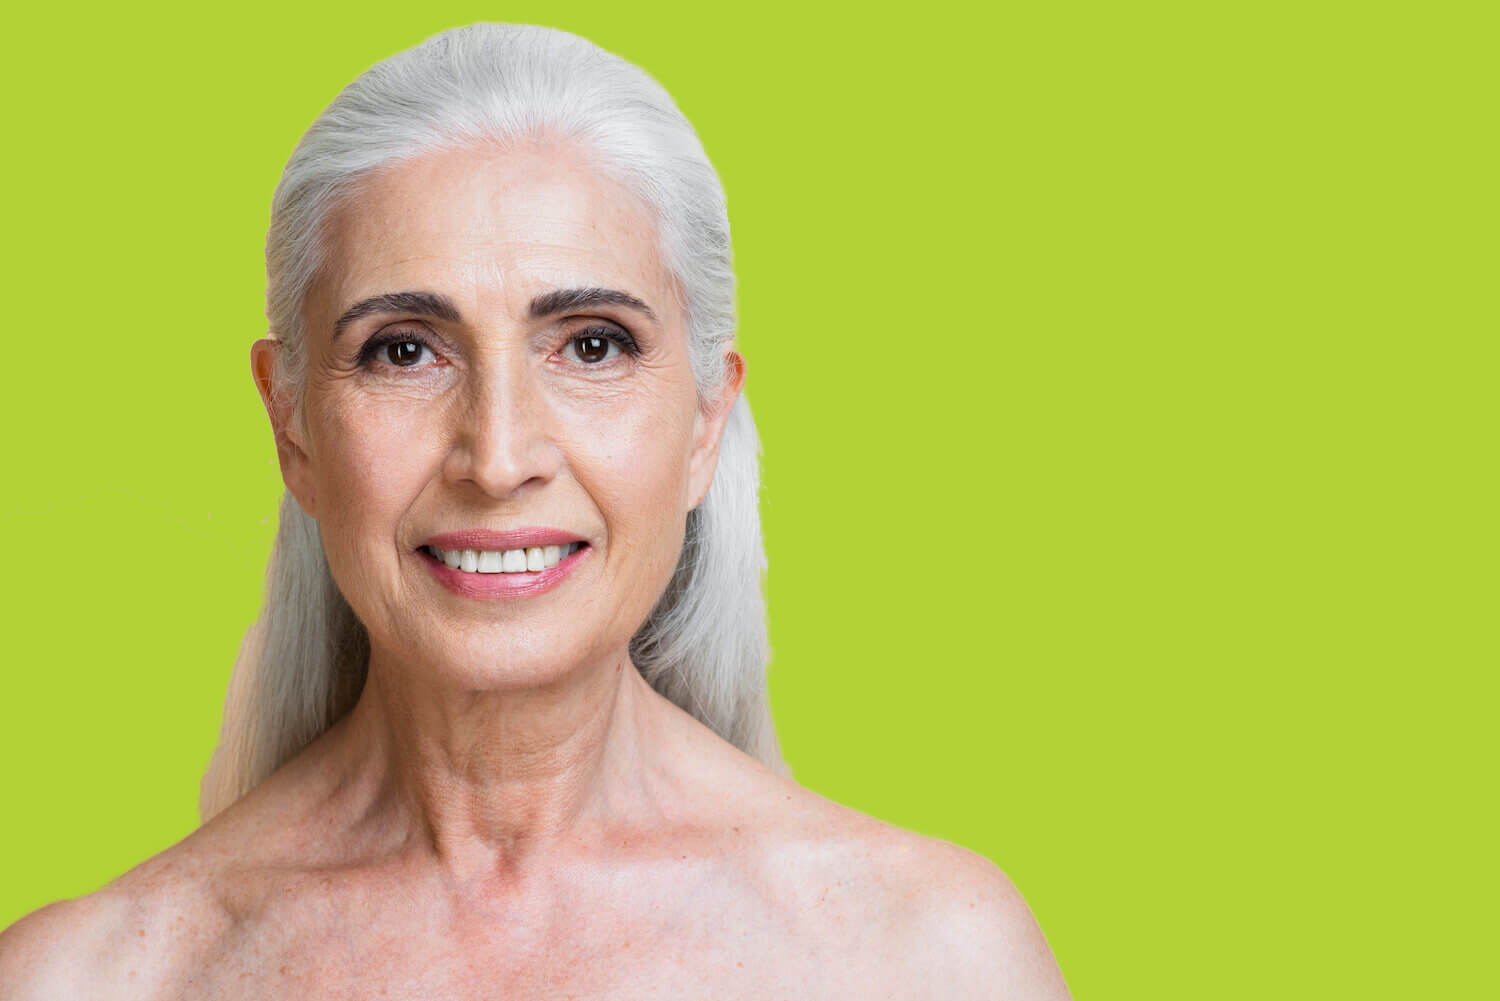 senior woman with rejuvenated skin from med spa services